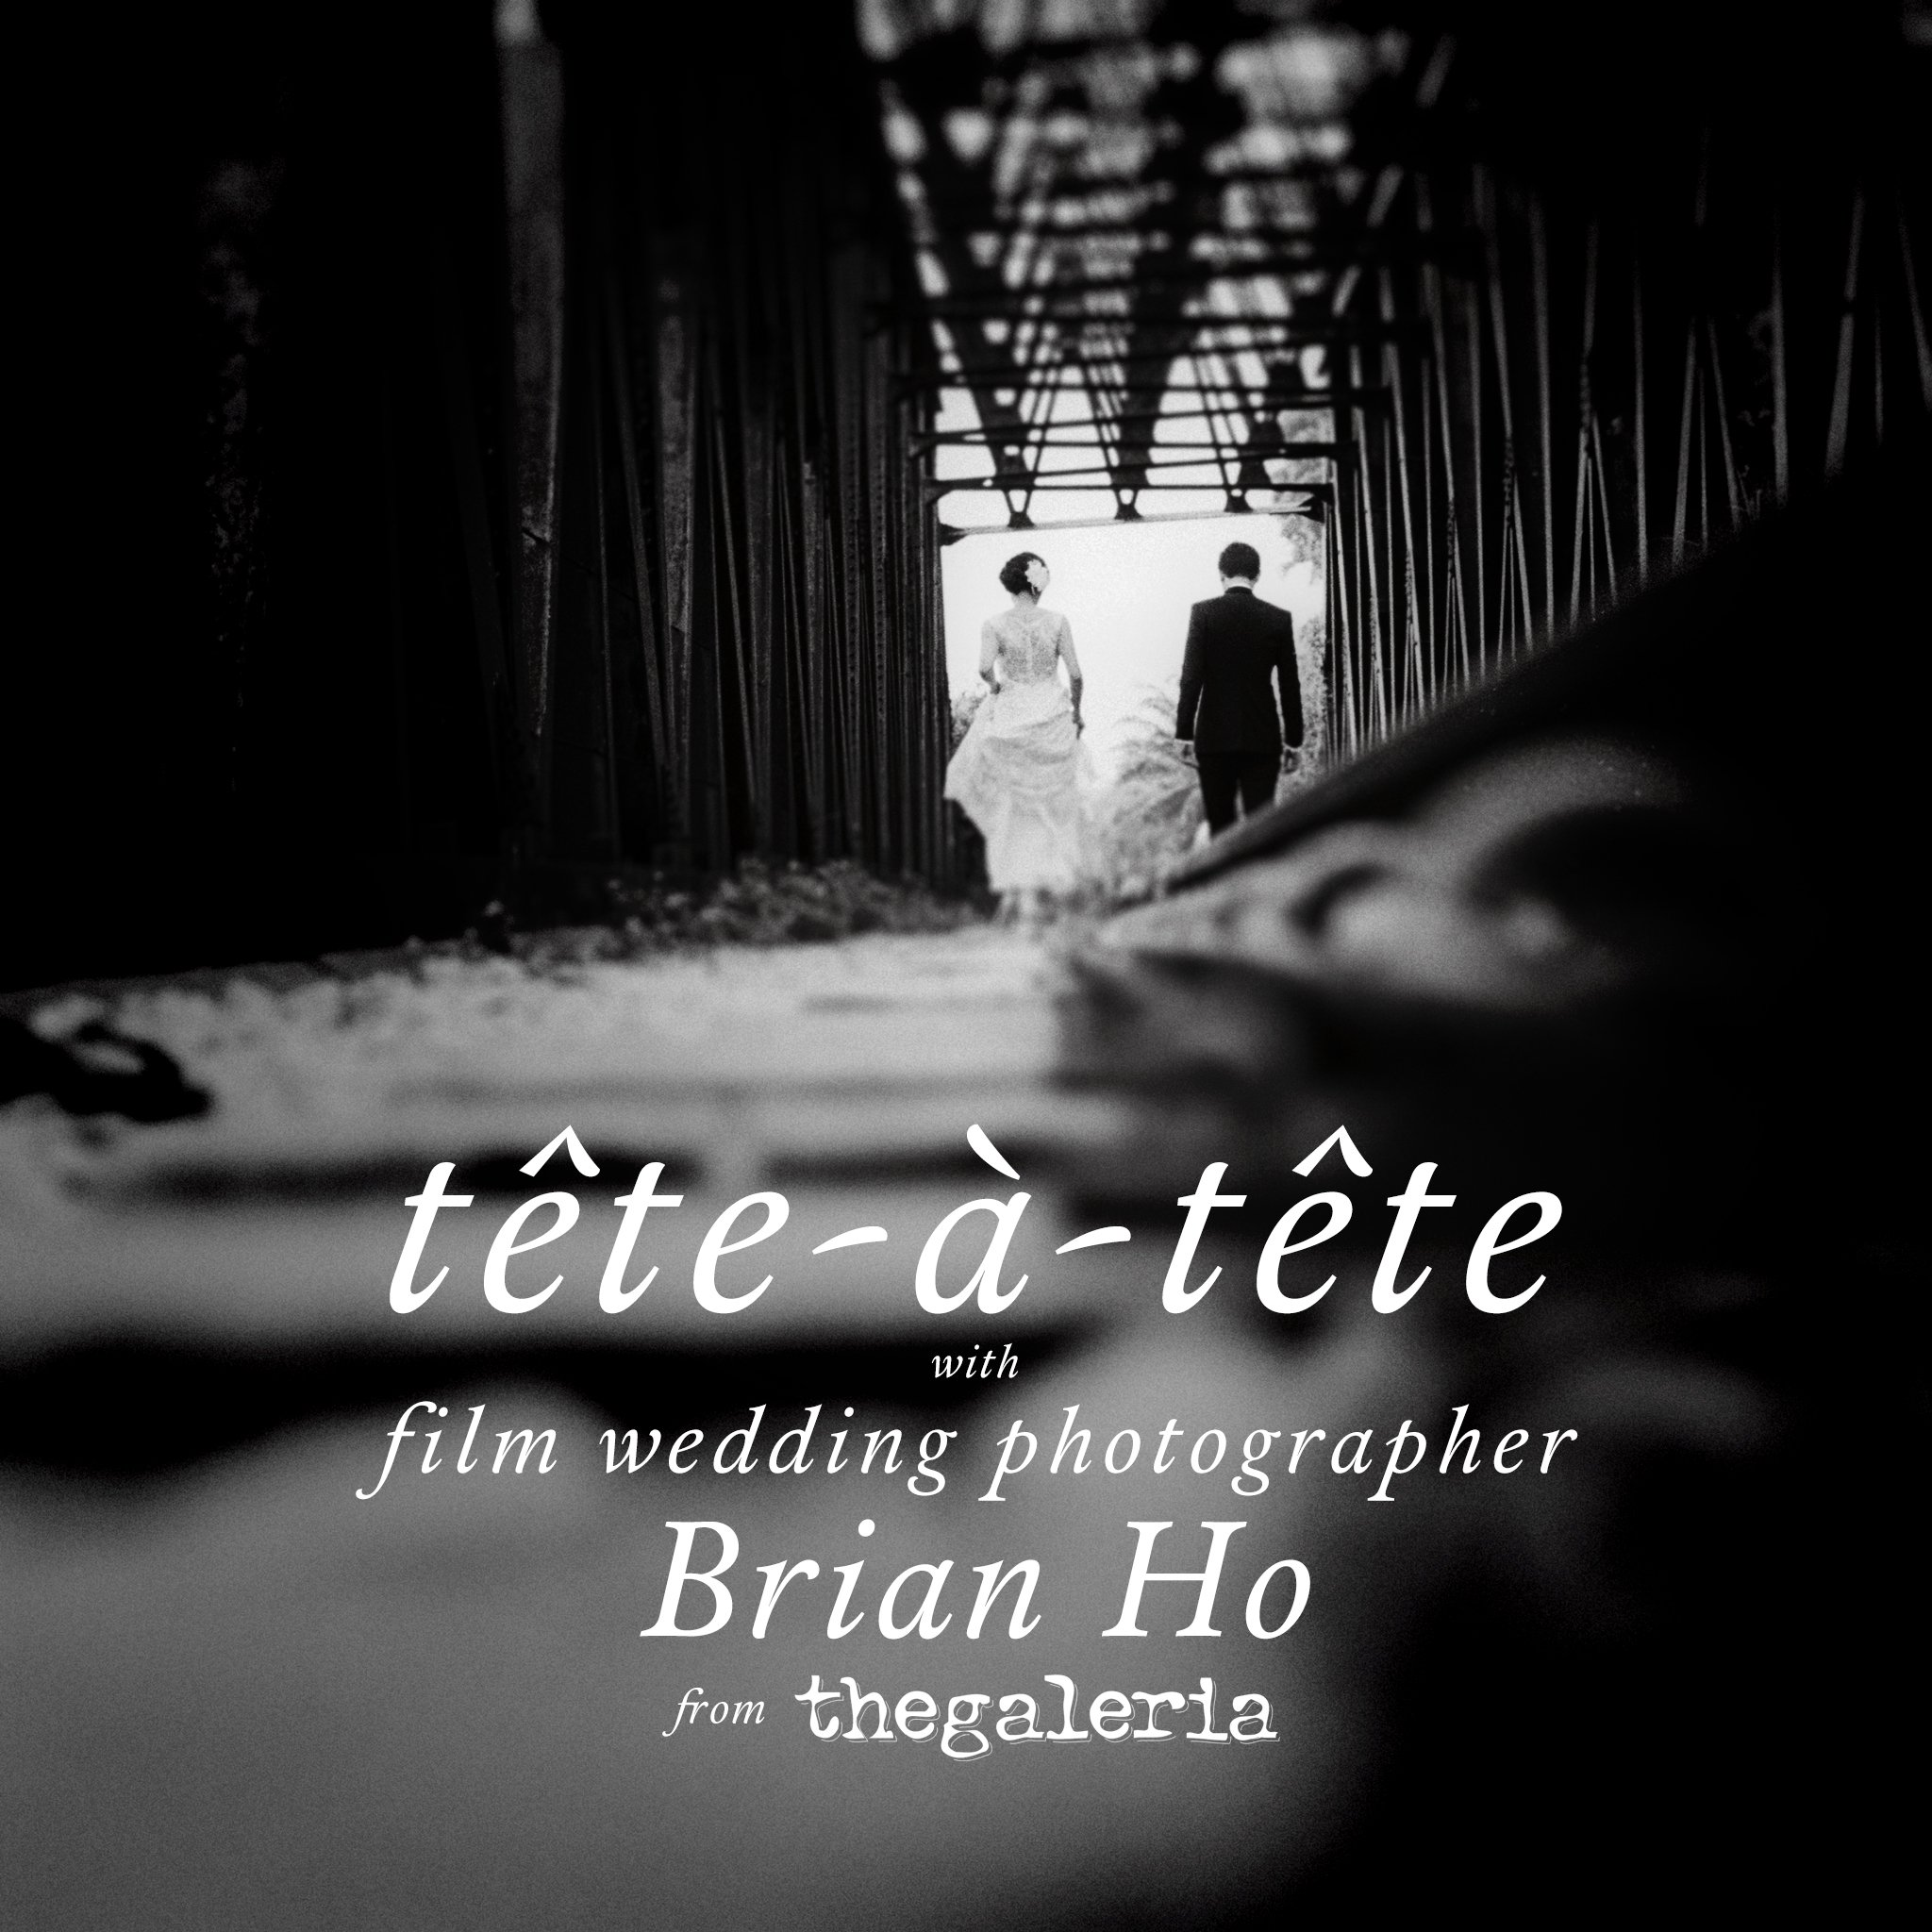 tete-a-tete with Film Wedding Photographer Brian Ho from thegaleria